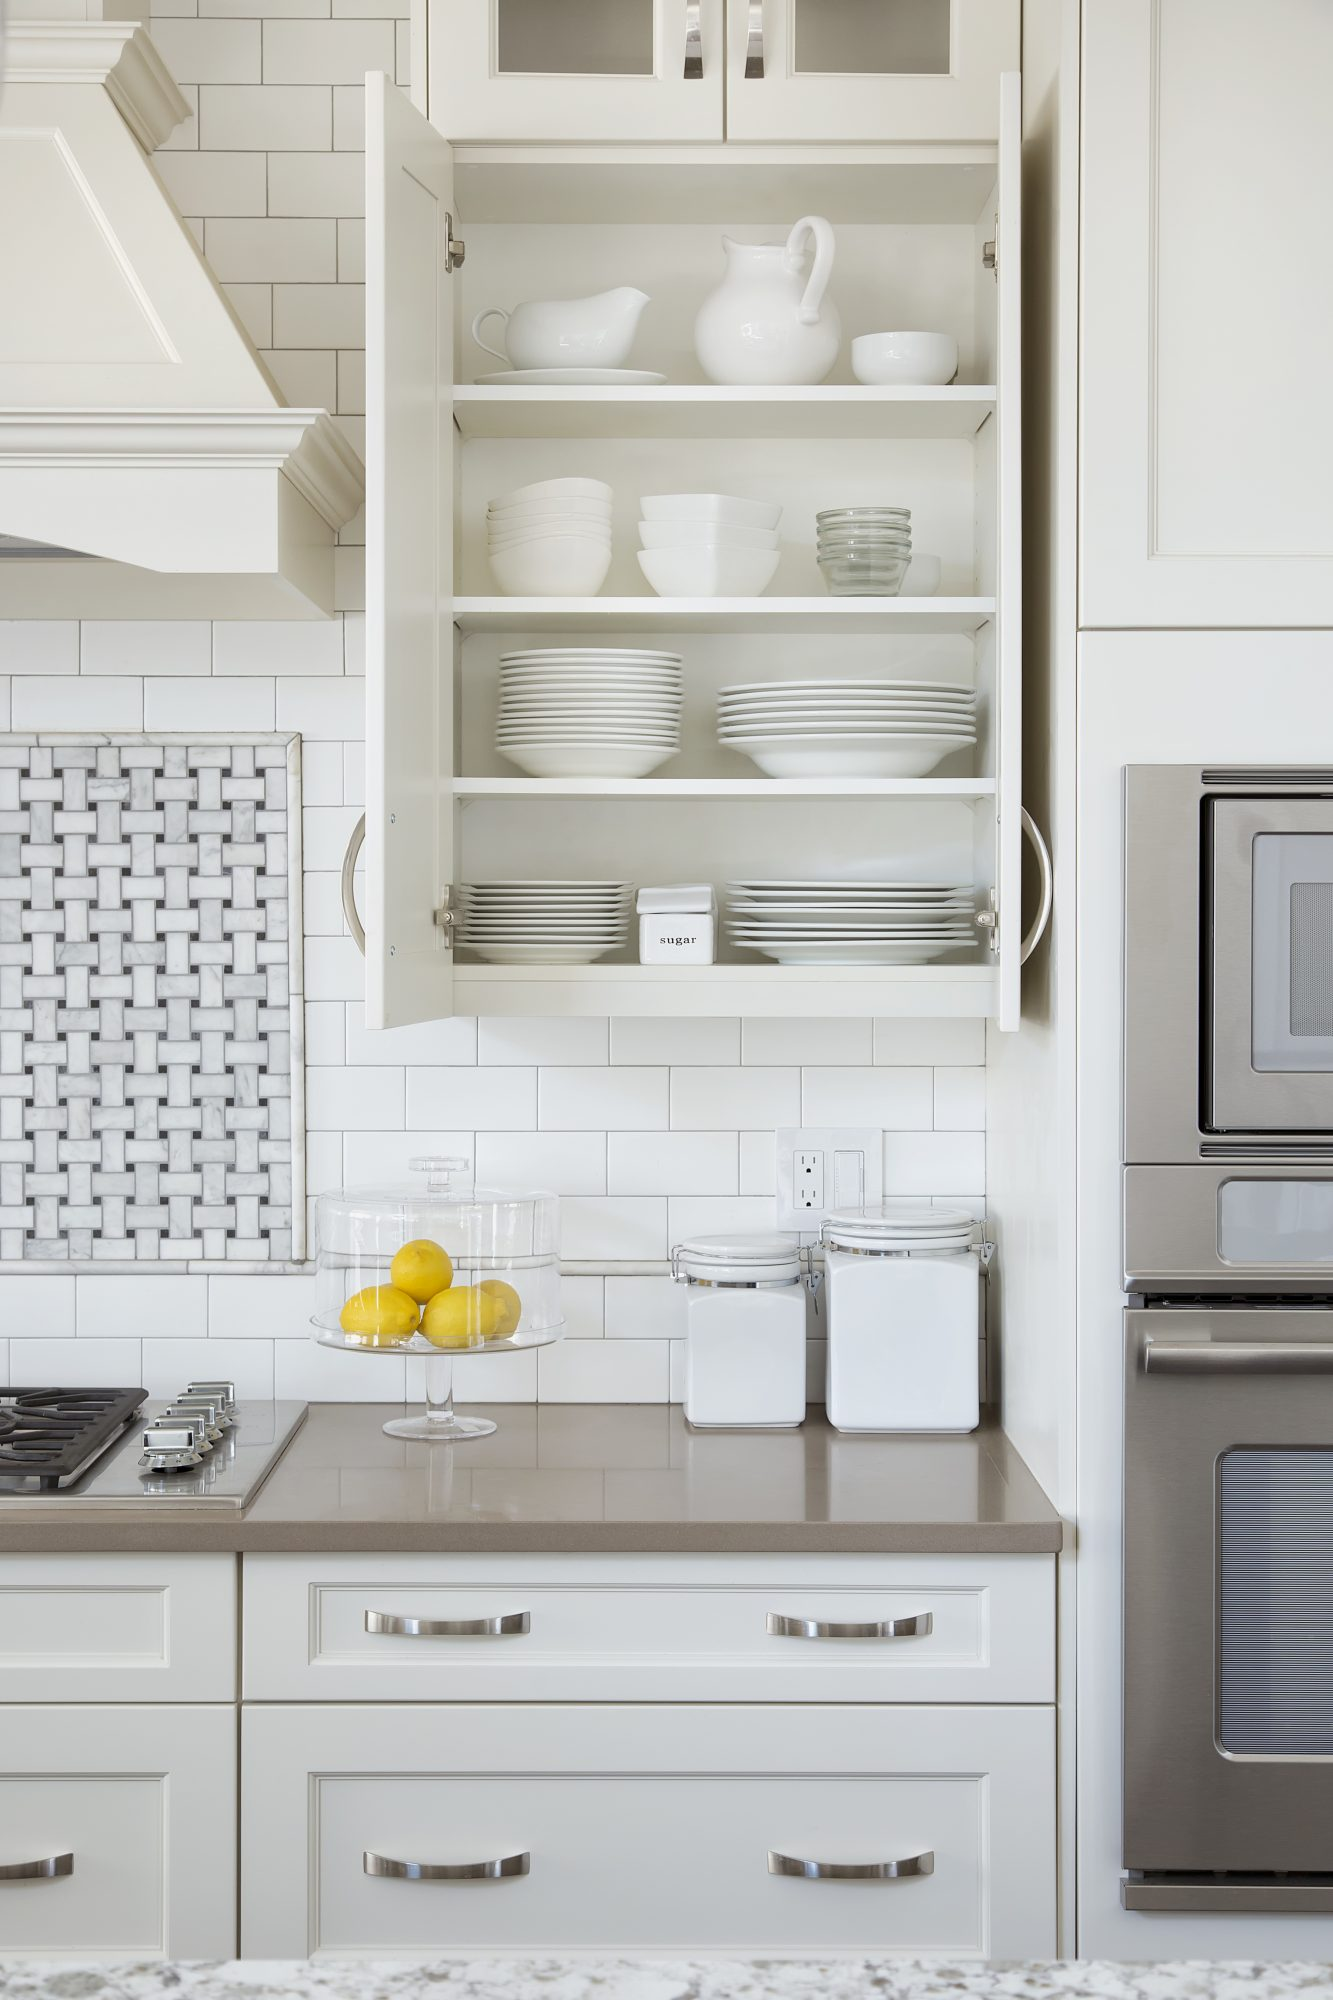 Inexpensive Kitchen Storage Ideas: 24 Smart Organizing Ideas For Your Kitchen